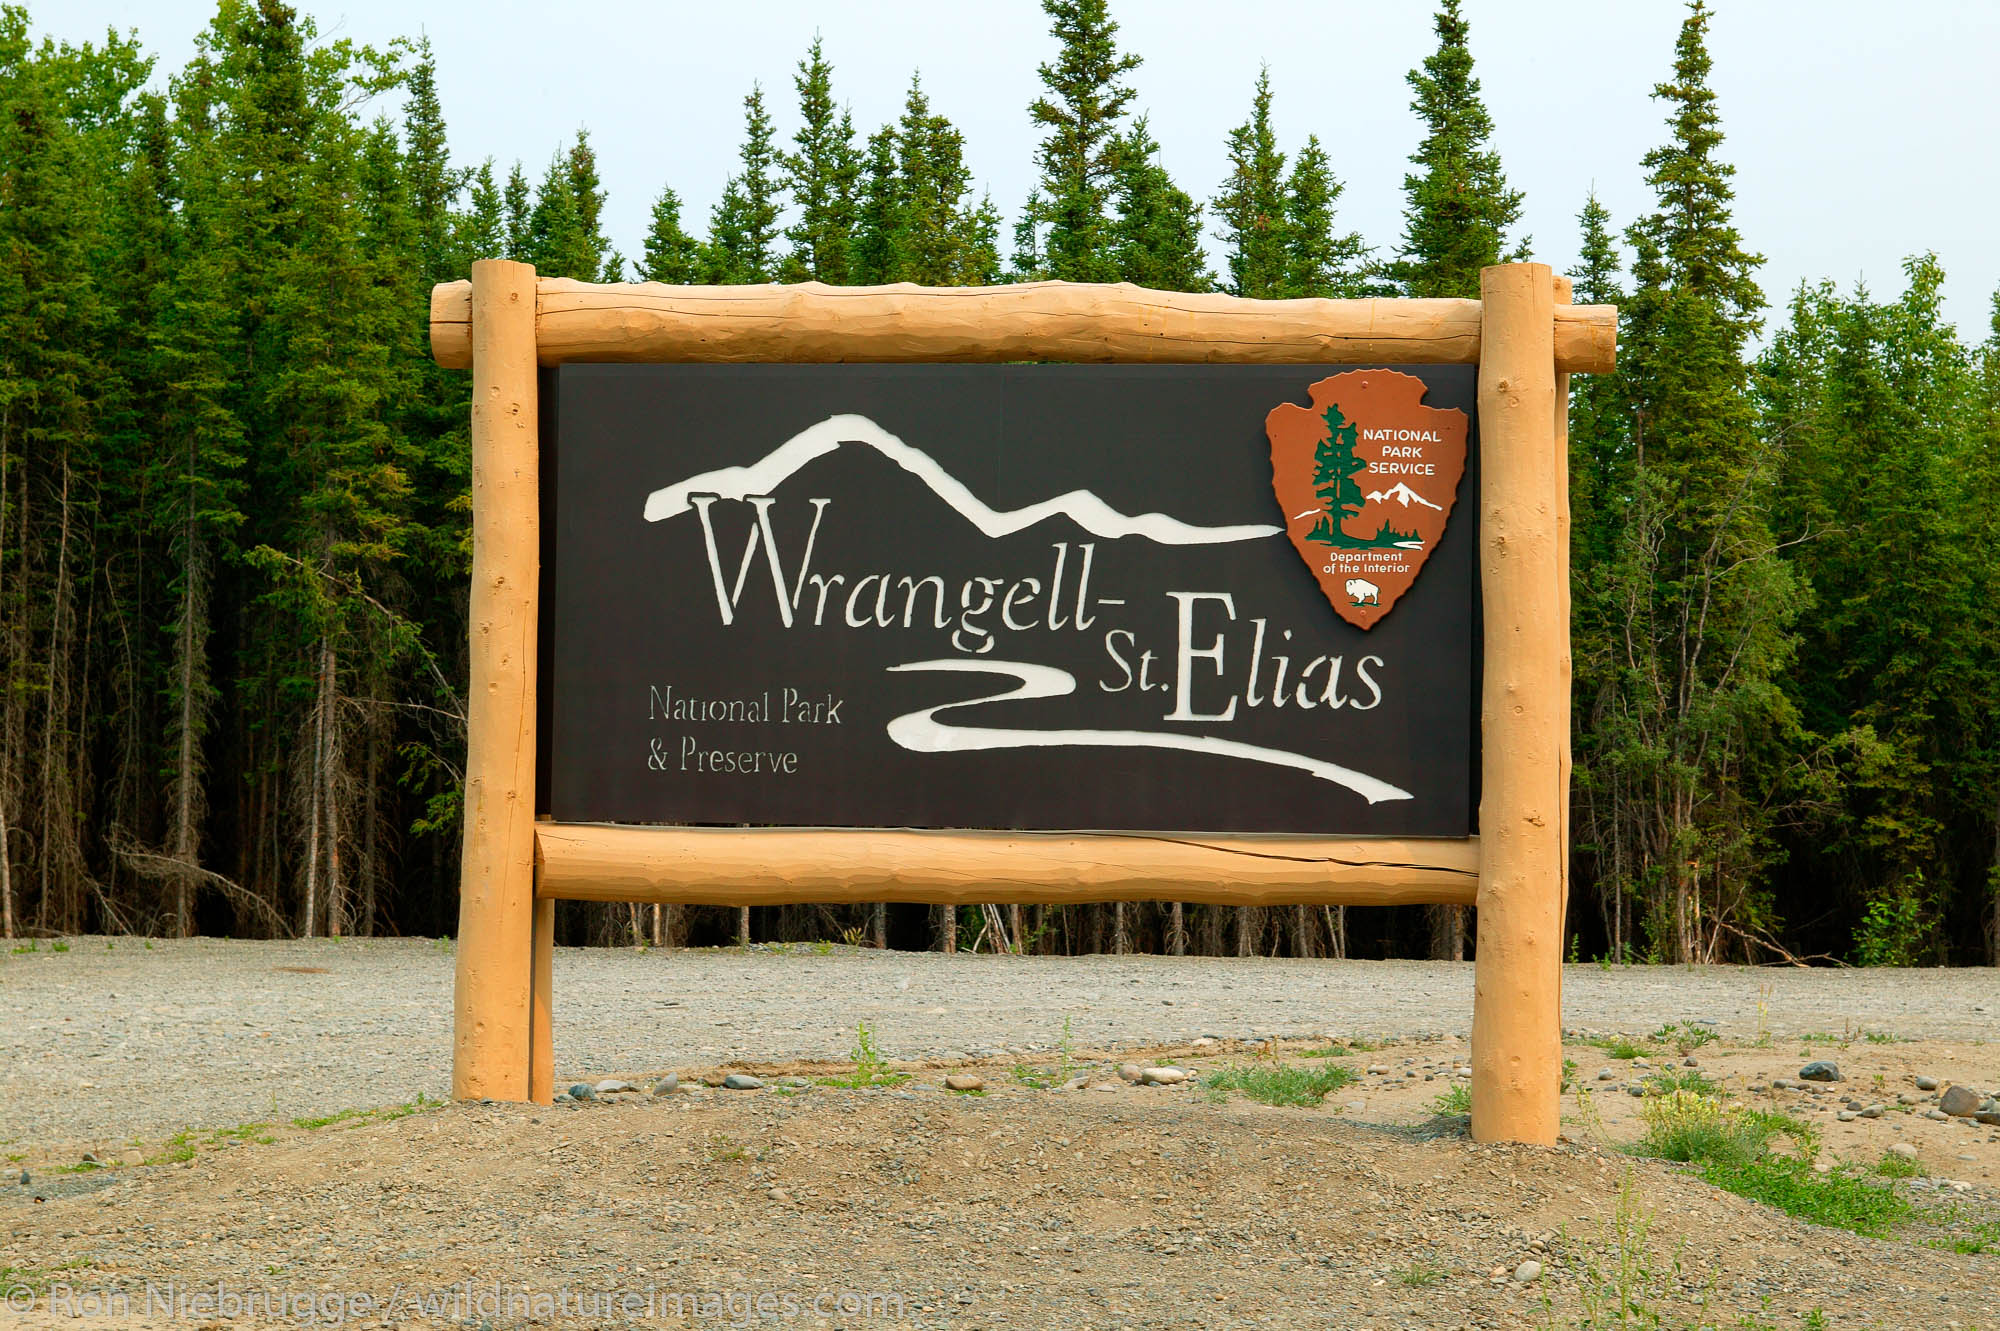 The sign at the visitor center and headquarters for the Wrangell-St Elias National Park and Preserve, Alaska.